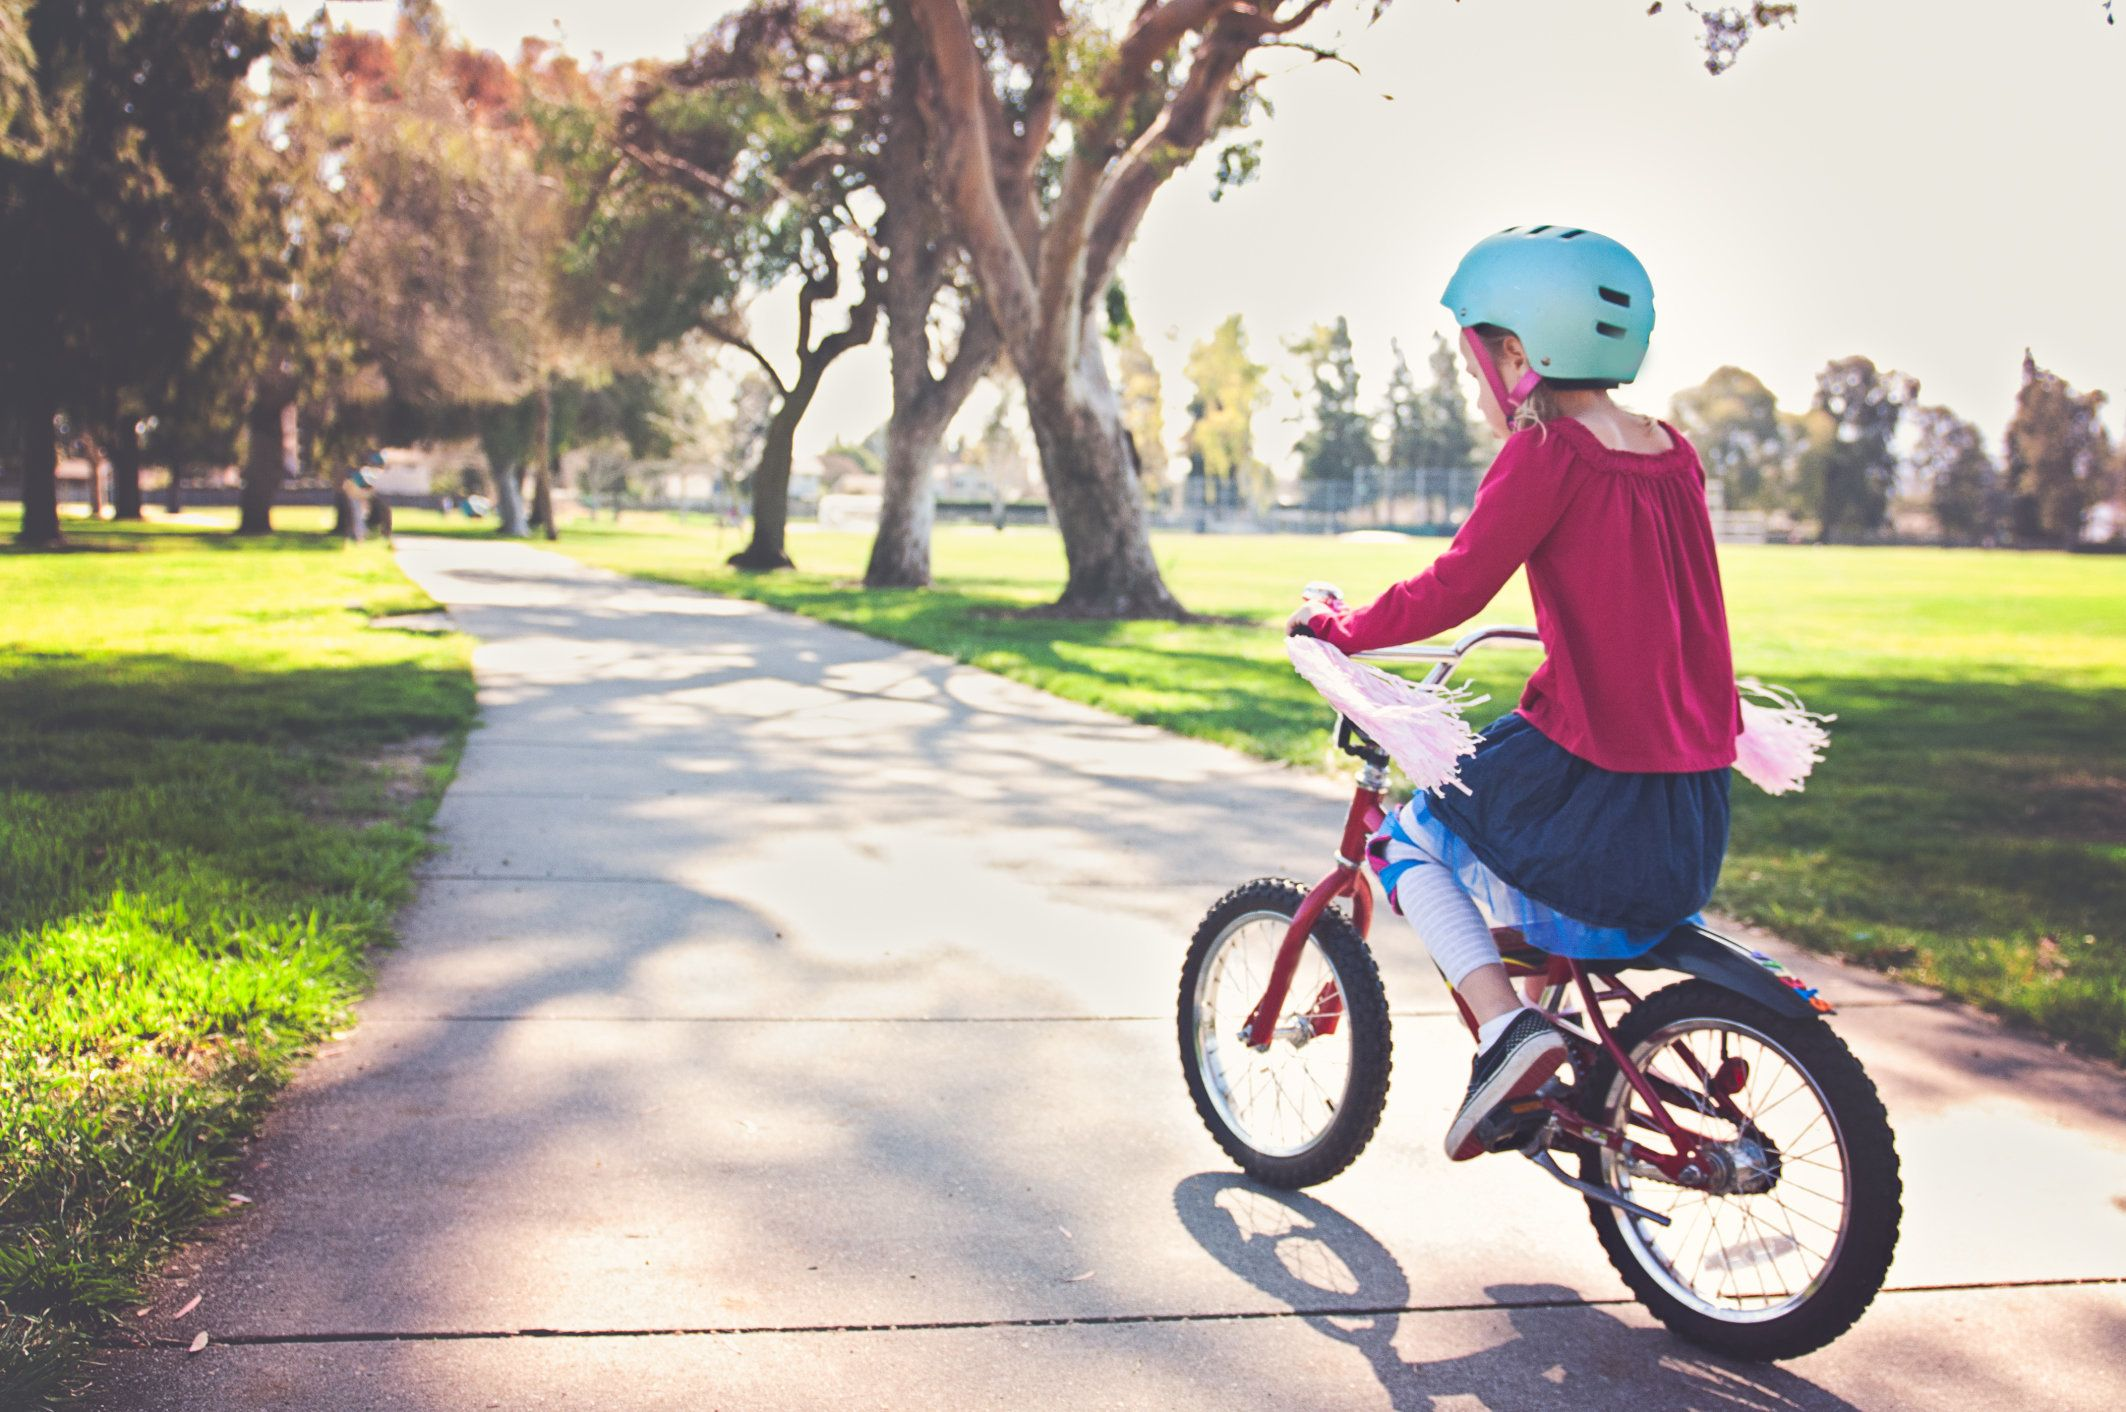 A 5 year old girl is riding a bike on a path through a park.  There are trees and grass along the path.  She is wearing a light blue helmet and her bike has pink streamers that are blowing in the wind.